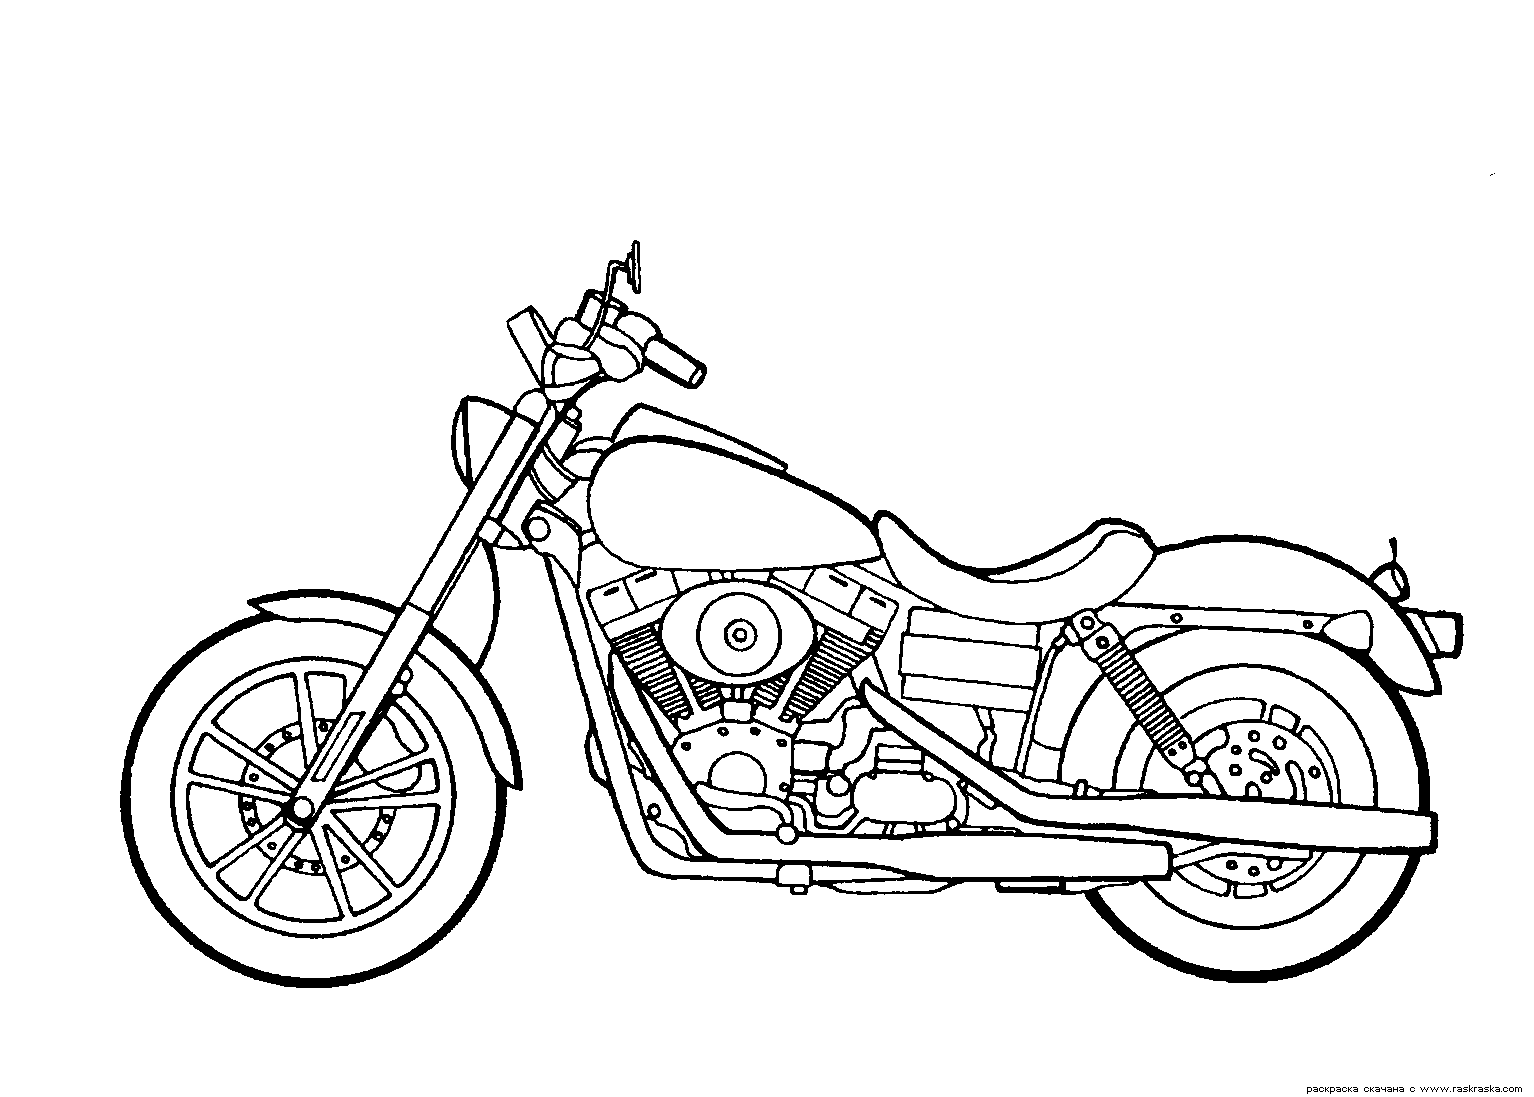 Motorcycle Drawing at GetDrawings.com | Free for personal use ...